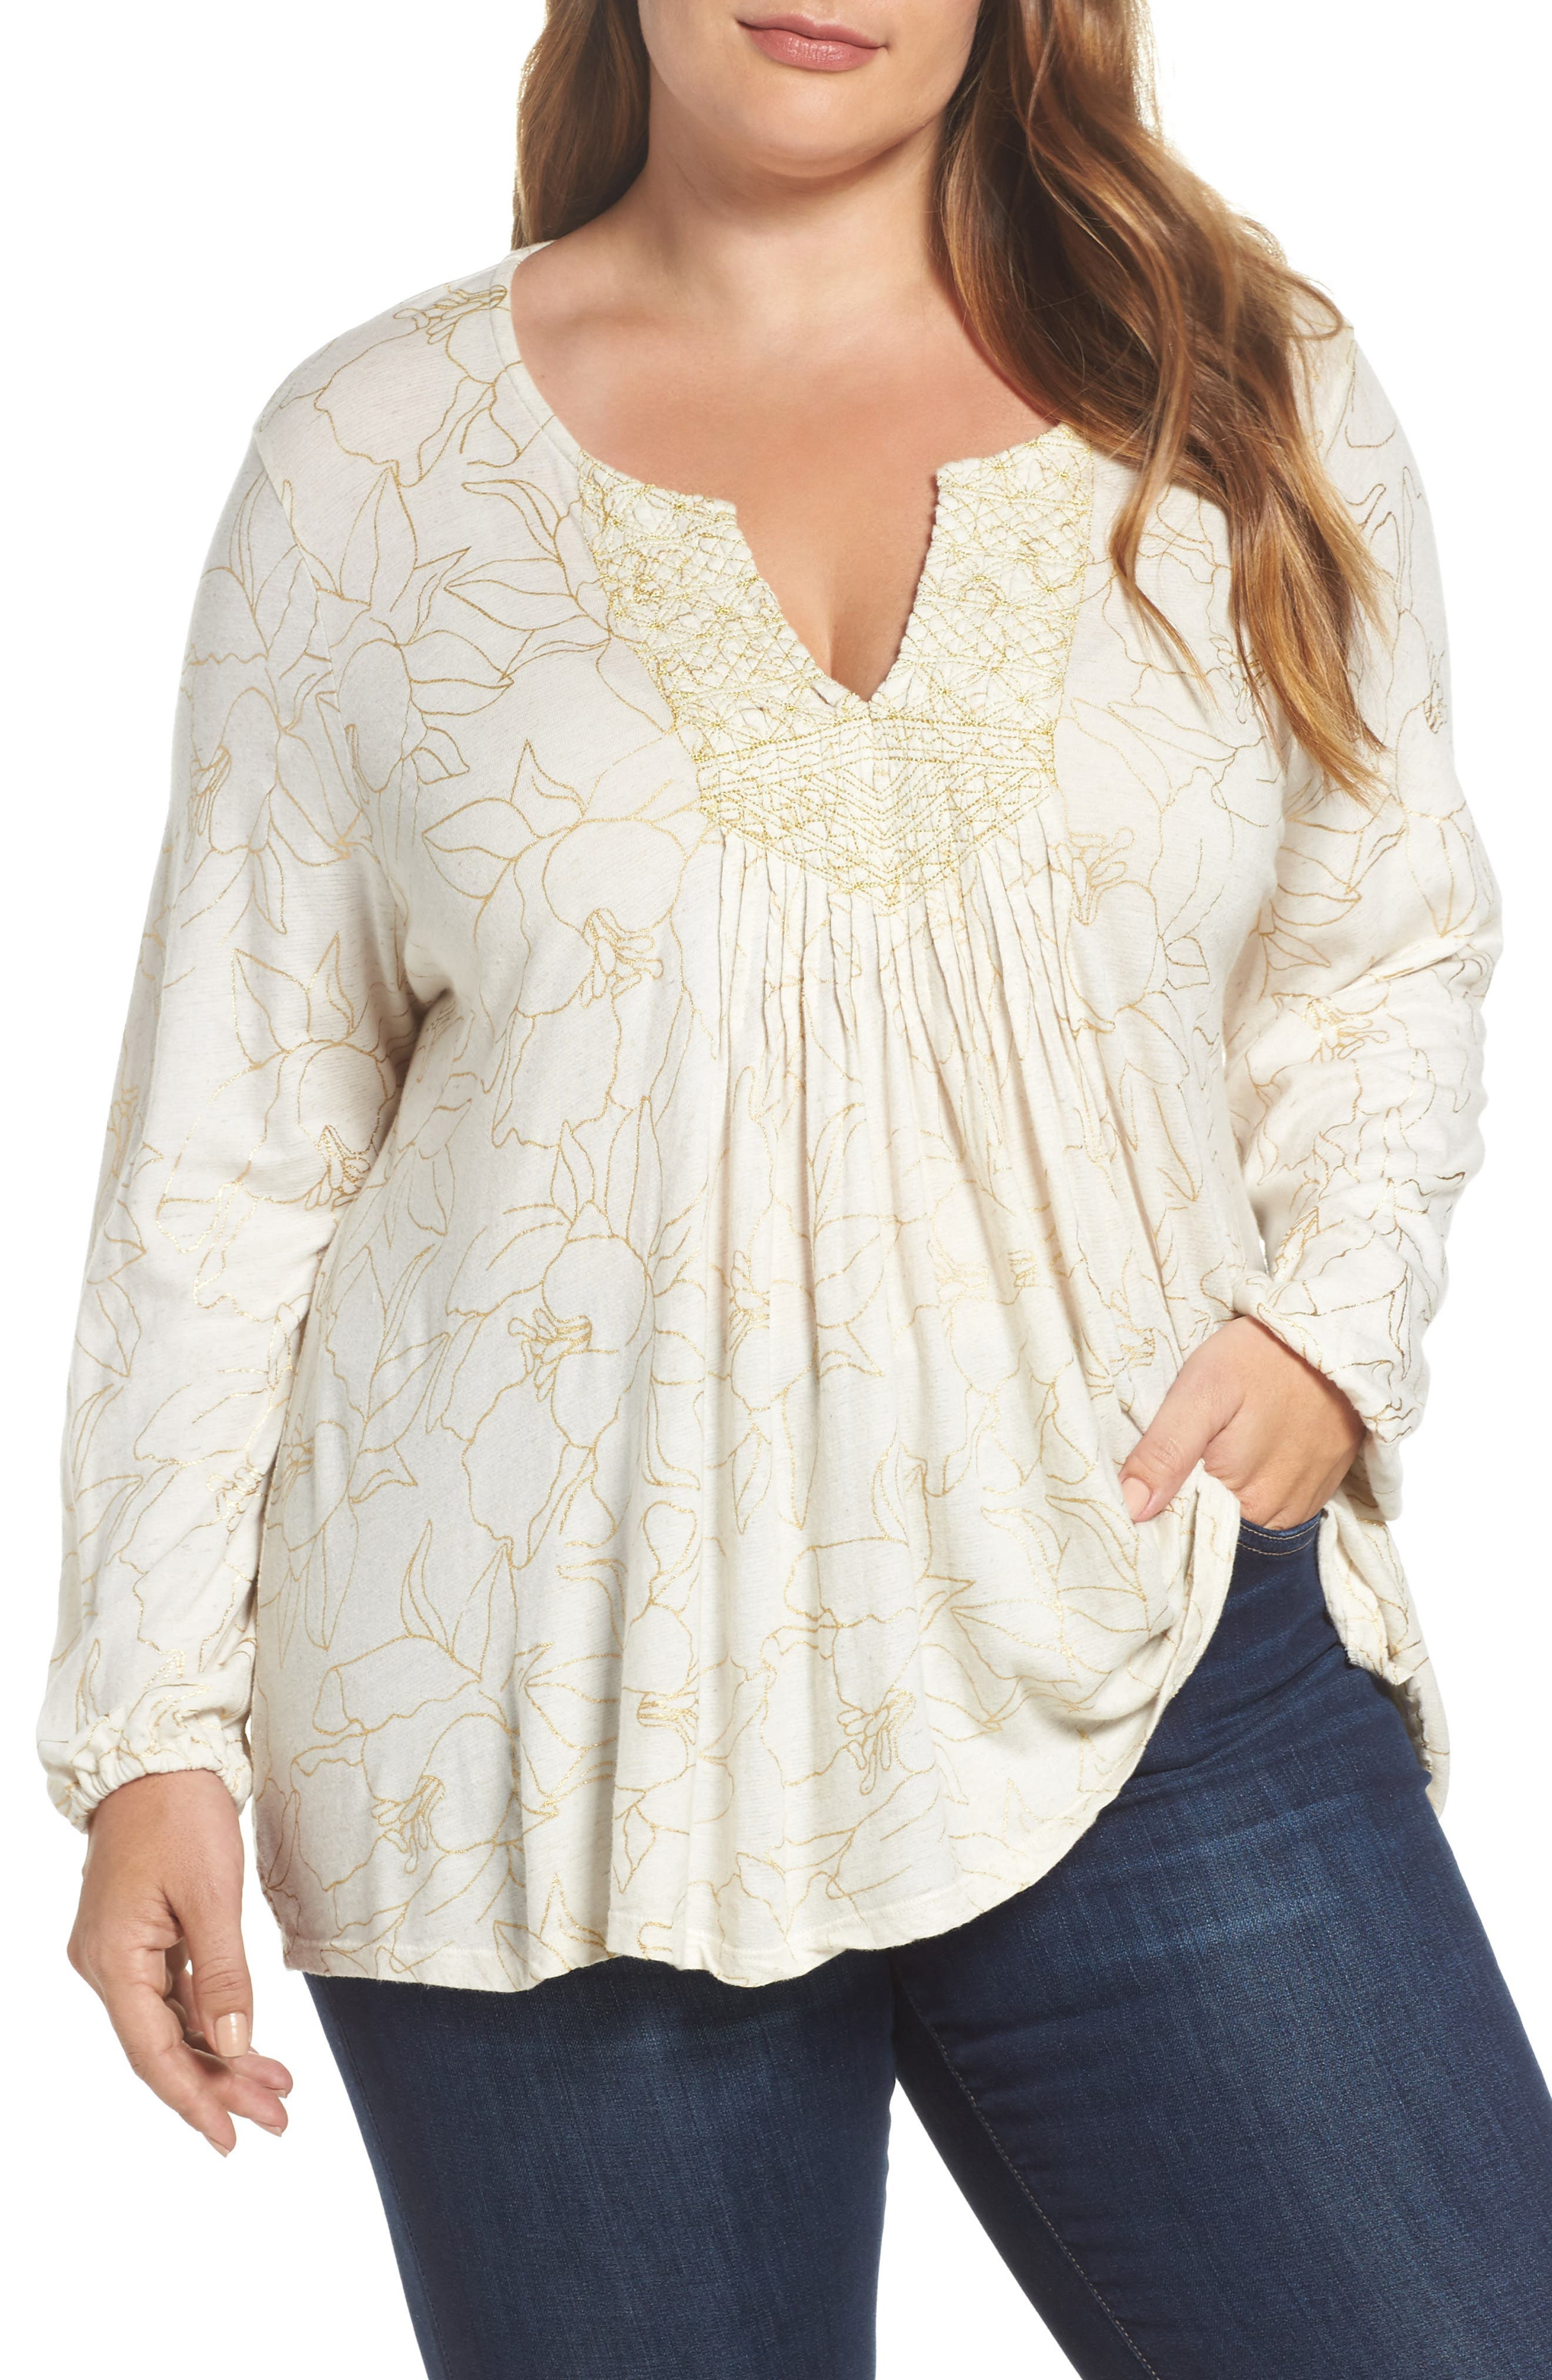 Main Image - Lucky Brand Embroidered Foil Print Top (Plus Size)